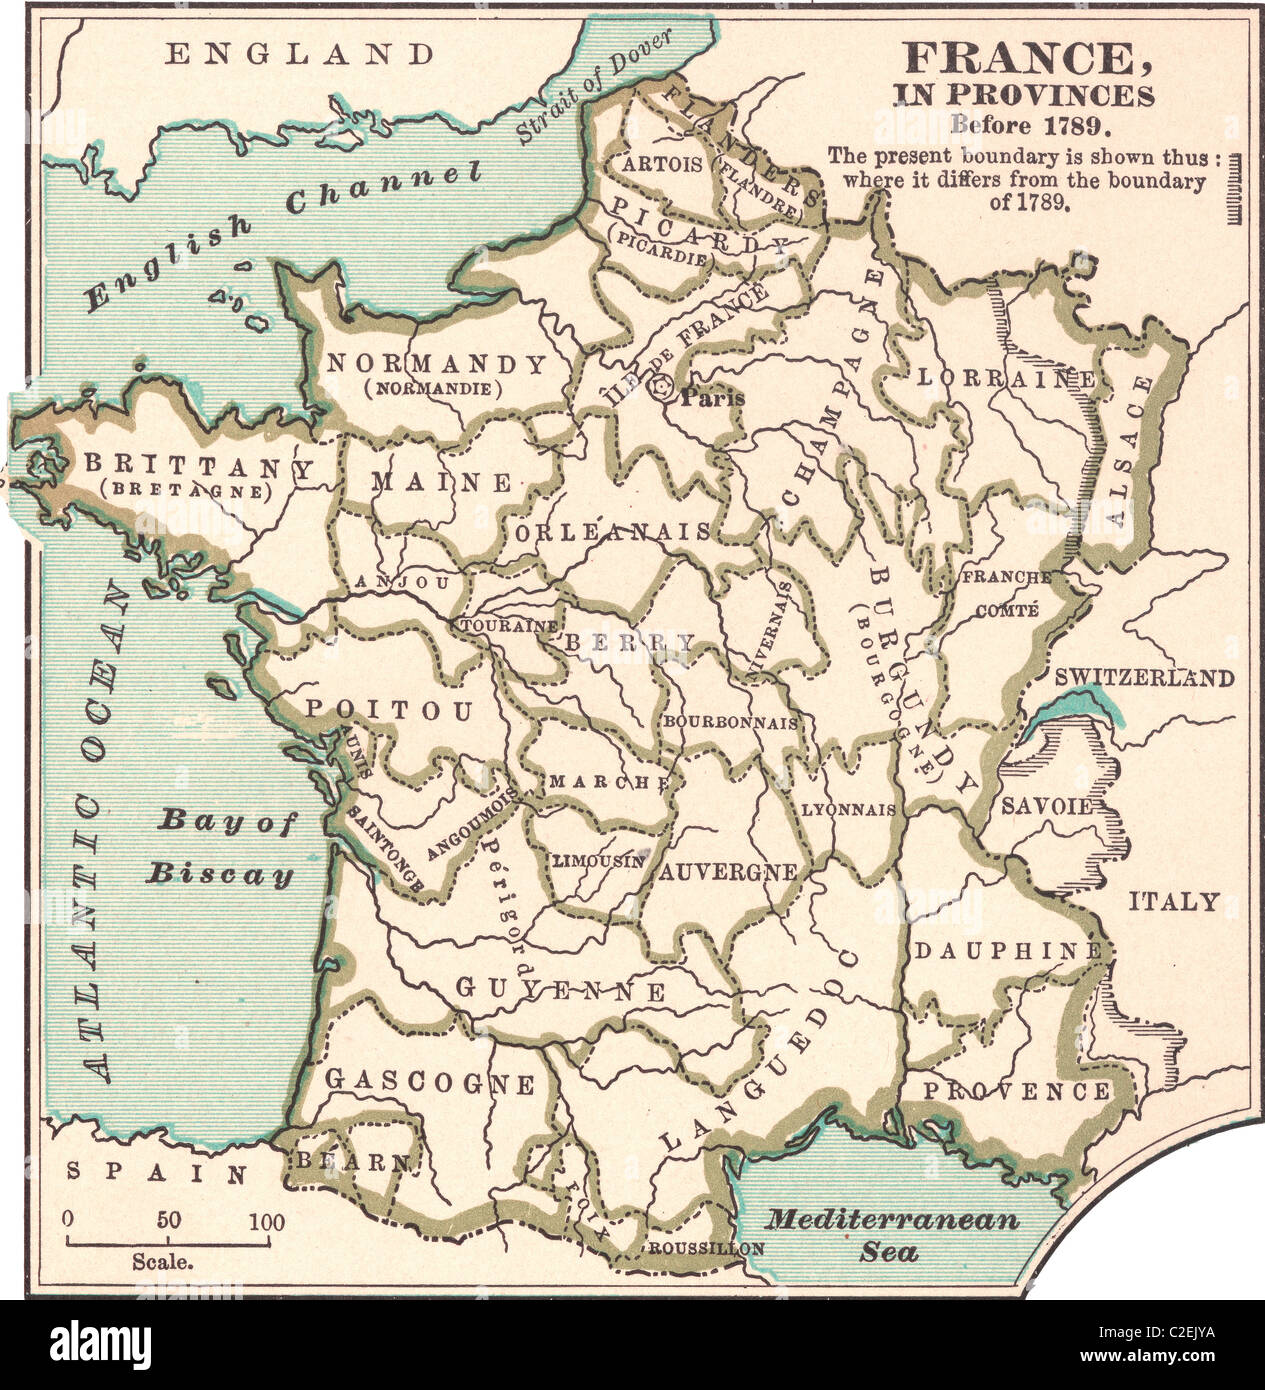 Map of France in Provinces Stock Photo Royalty Free Image